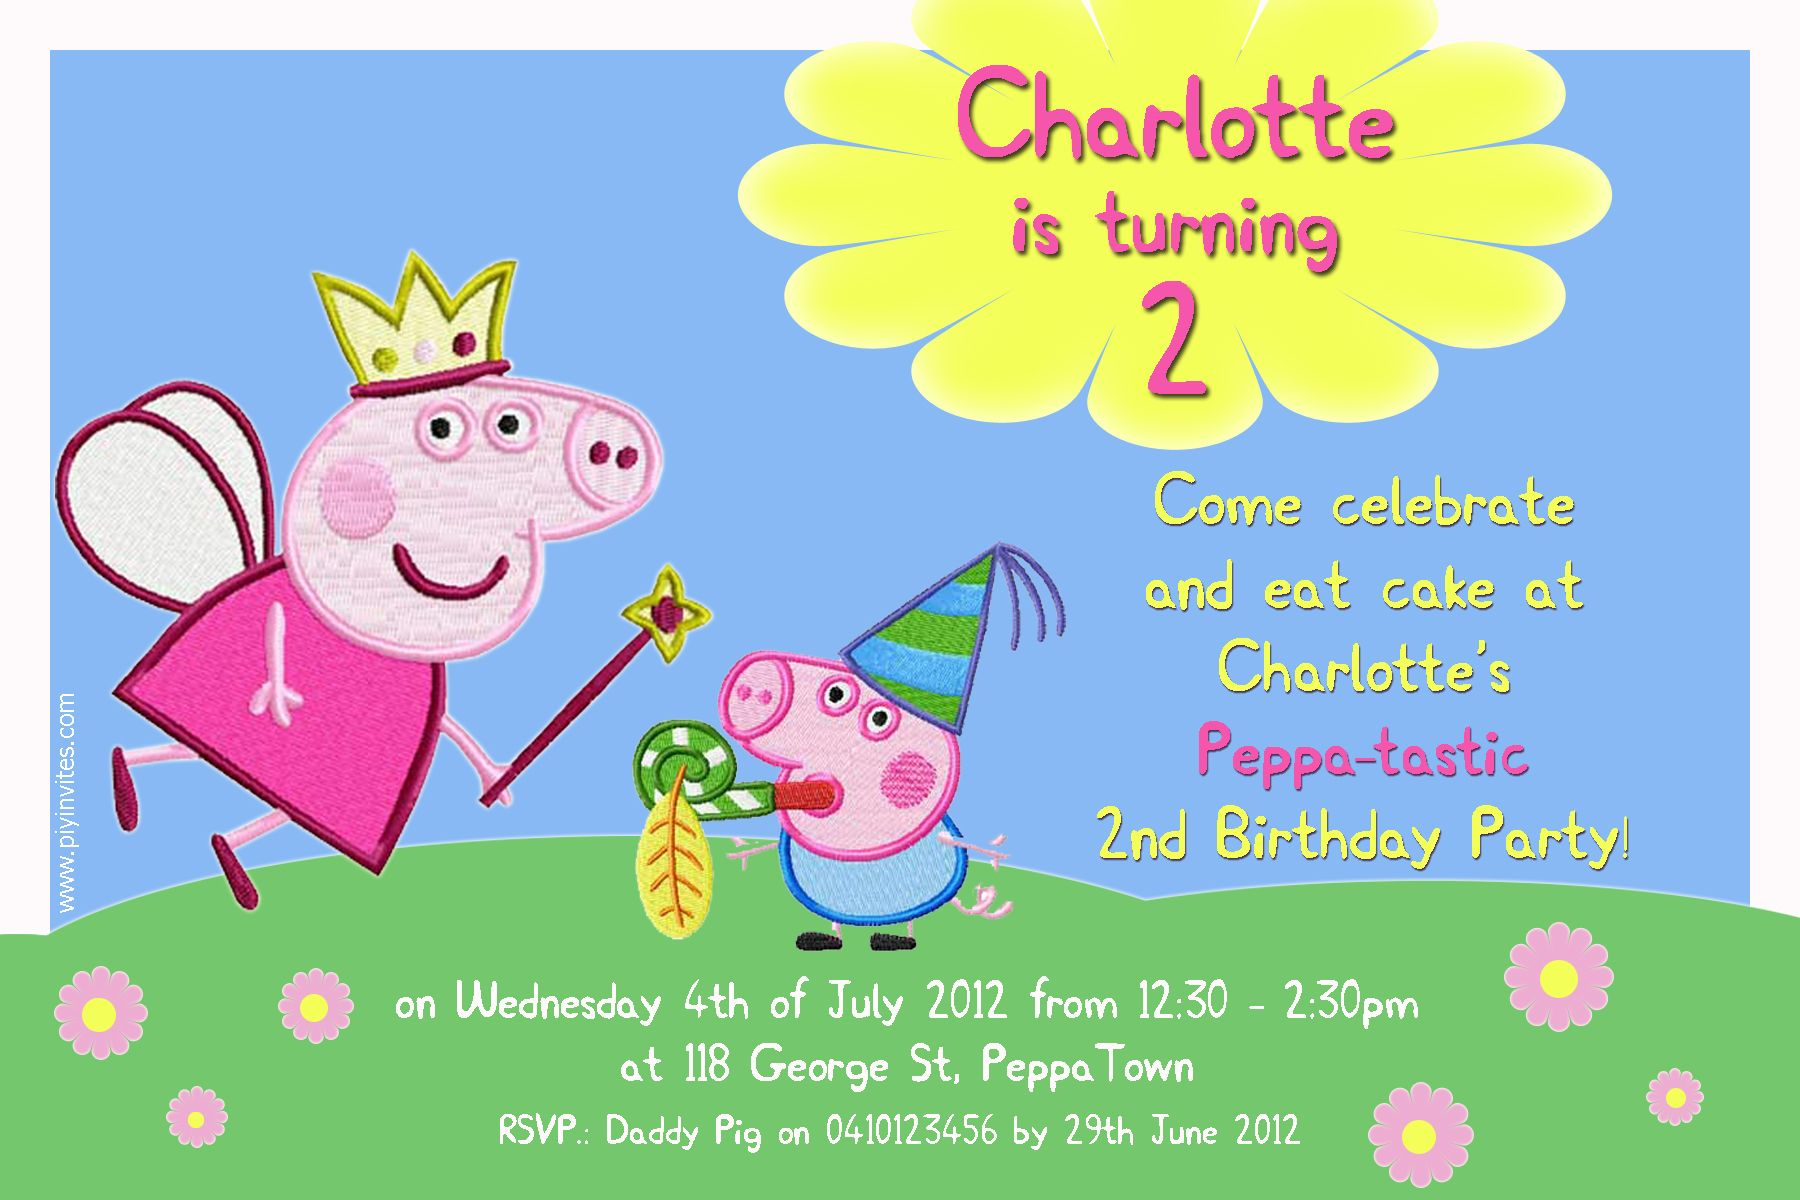 Peppa Pig Bday Invites Personalized Charlotte S Peppa Pig 2nd Birthday By Elise Peppa Pig Birthday Peppa Pig Birthday Invitations Pig Birthday